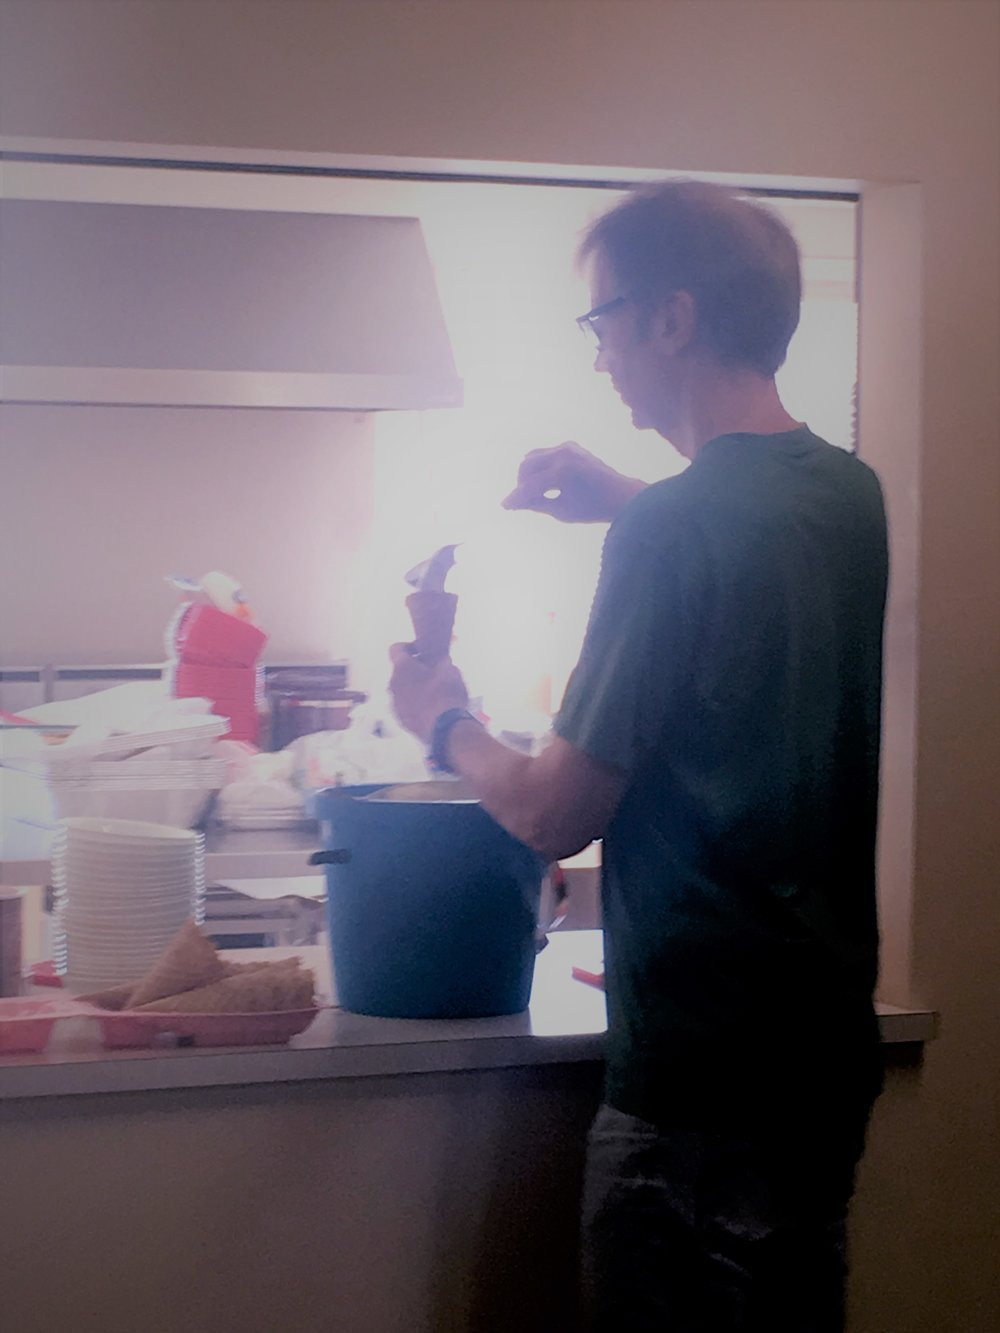 For some reason, this is the most disturbing picture (although I'm making an ice cream cone). Just seems scrawny.